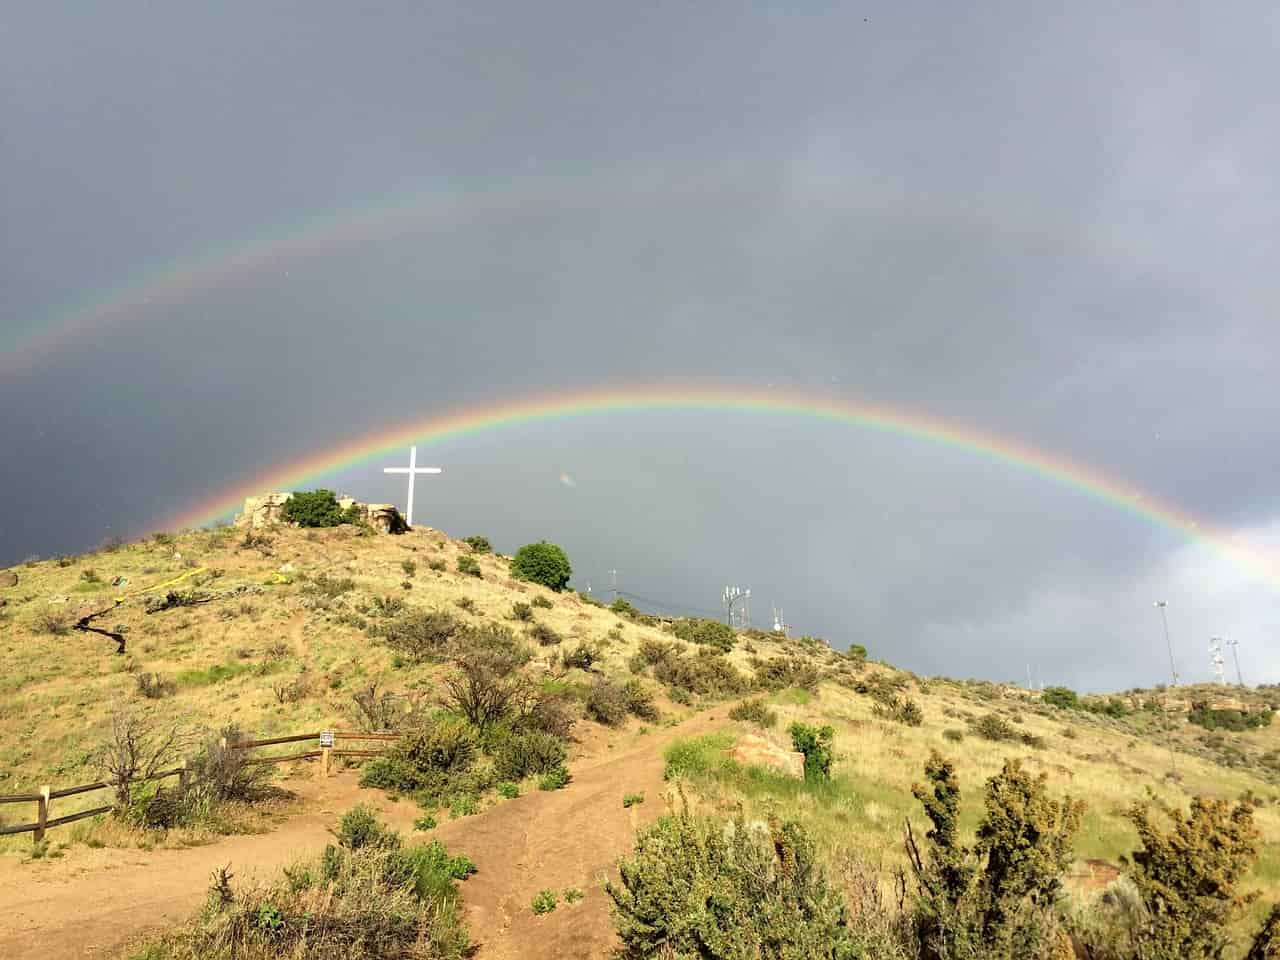 What is a double rainbow?